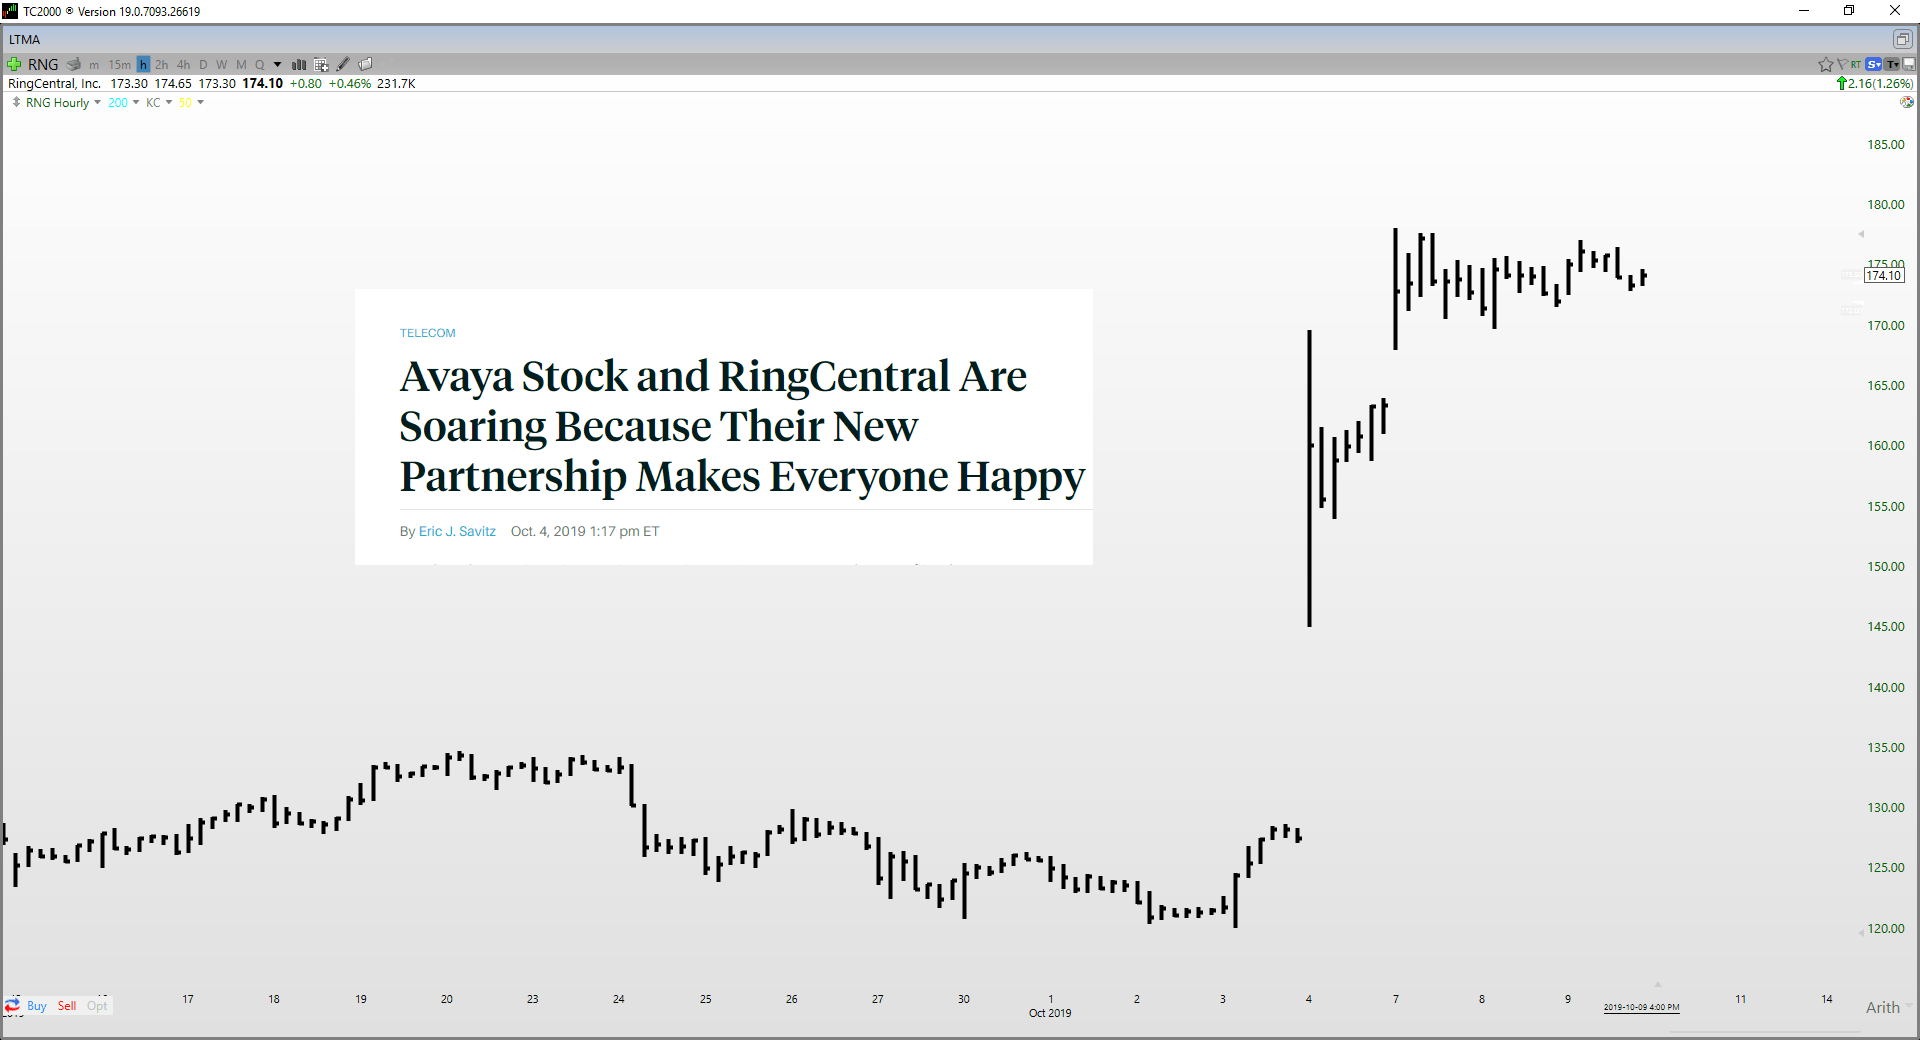 RingCentral: Close To Fully Valued